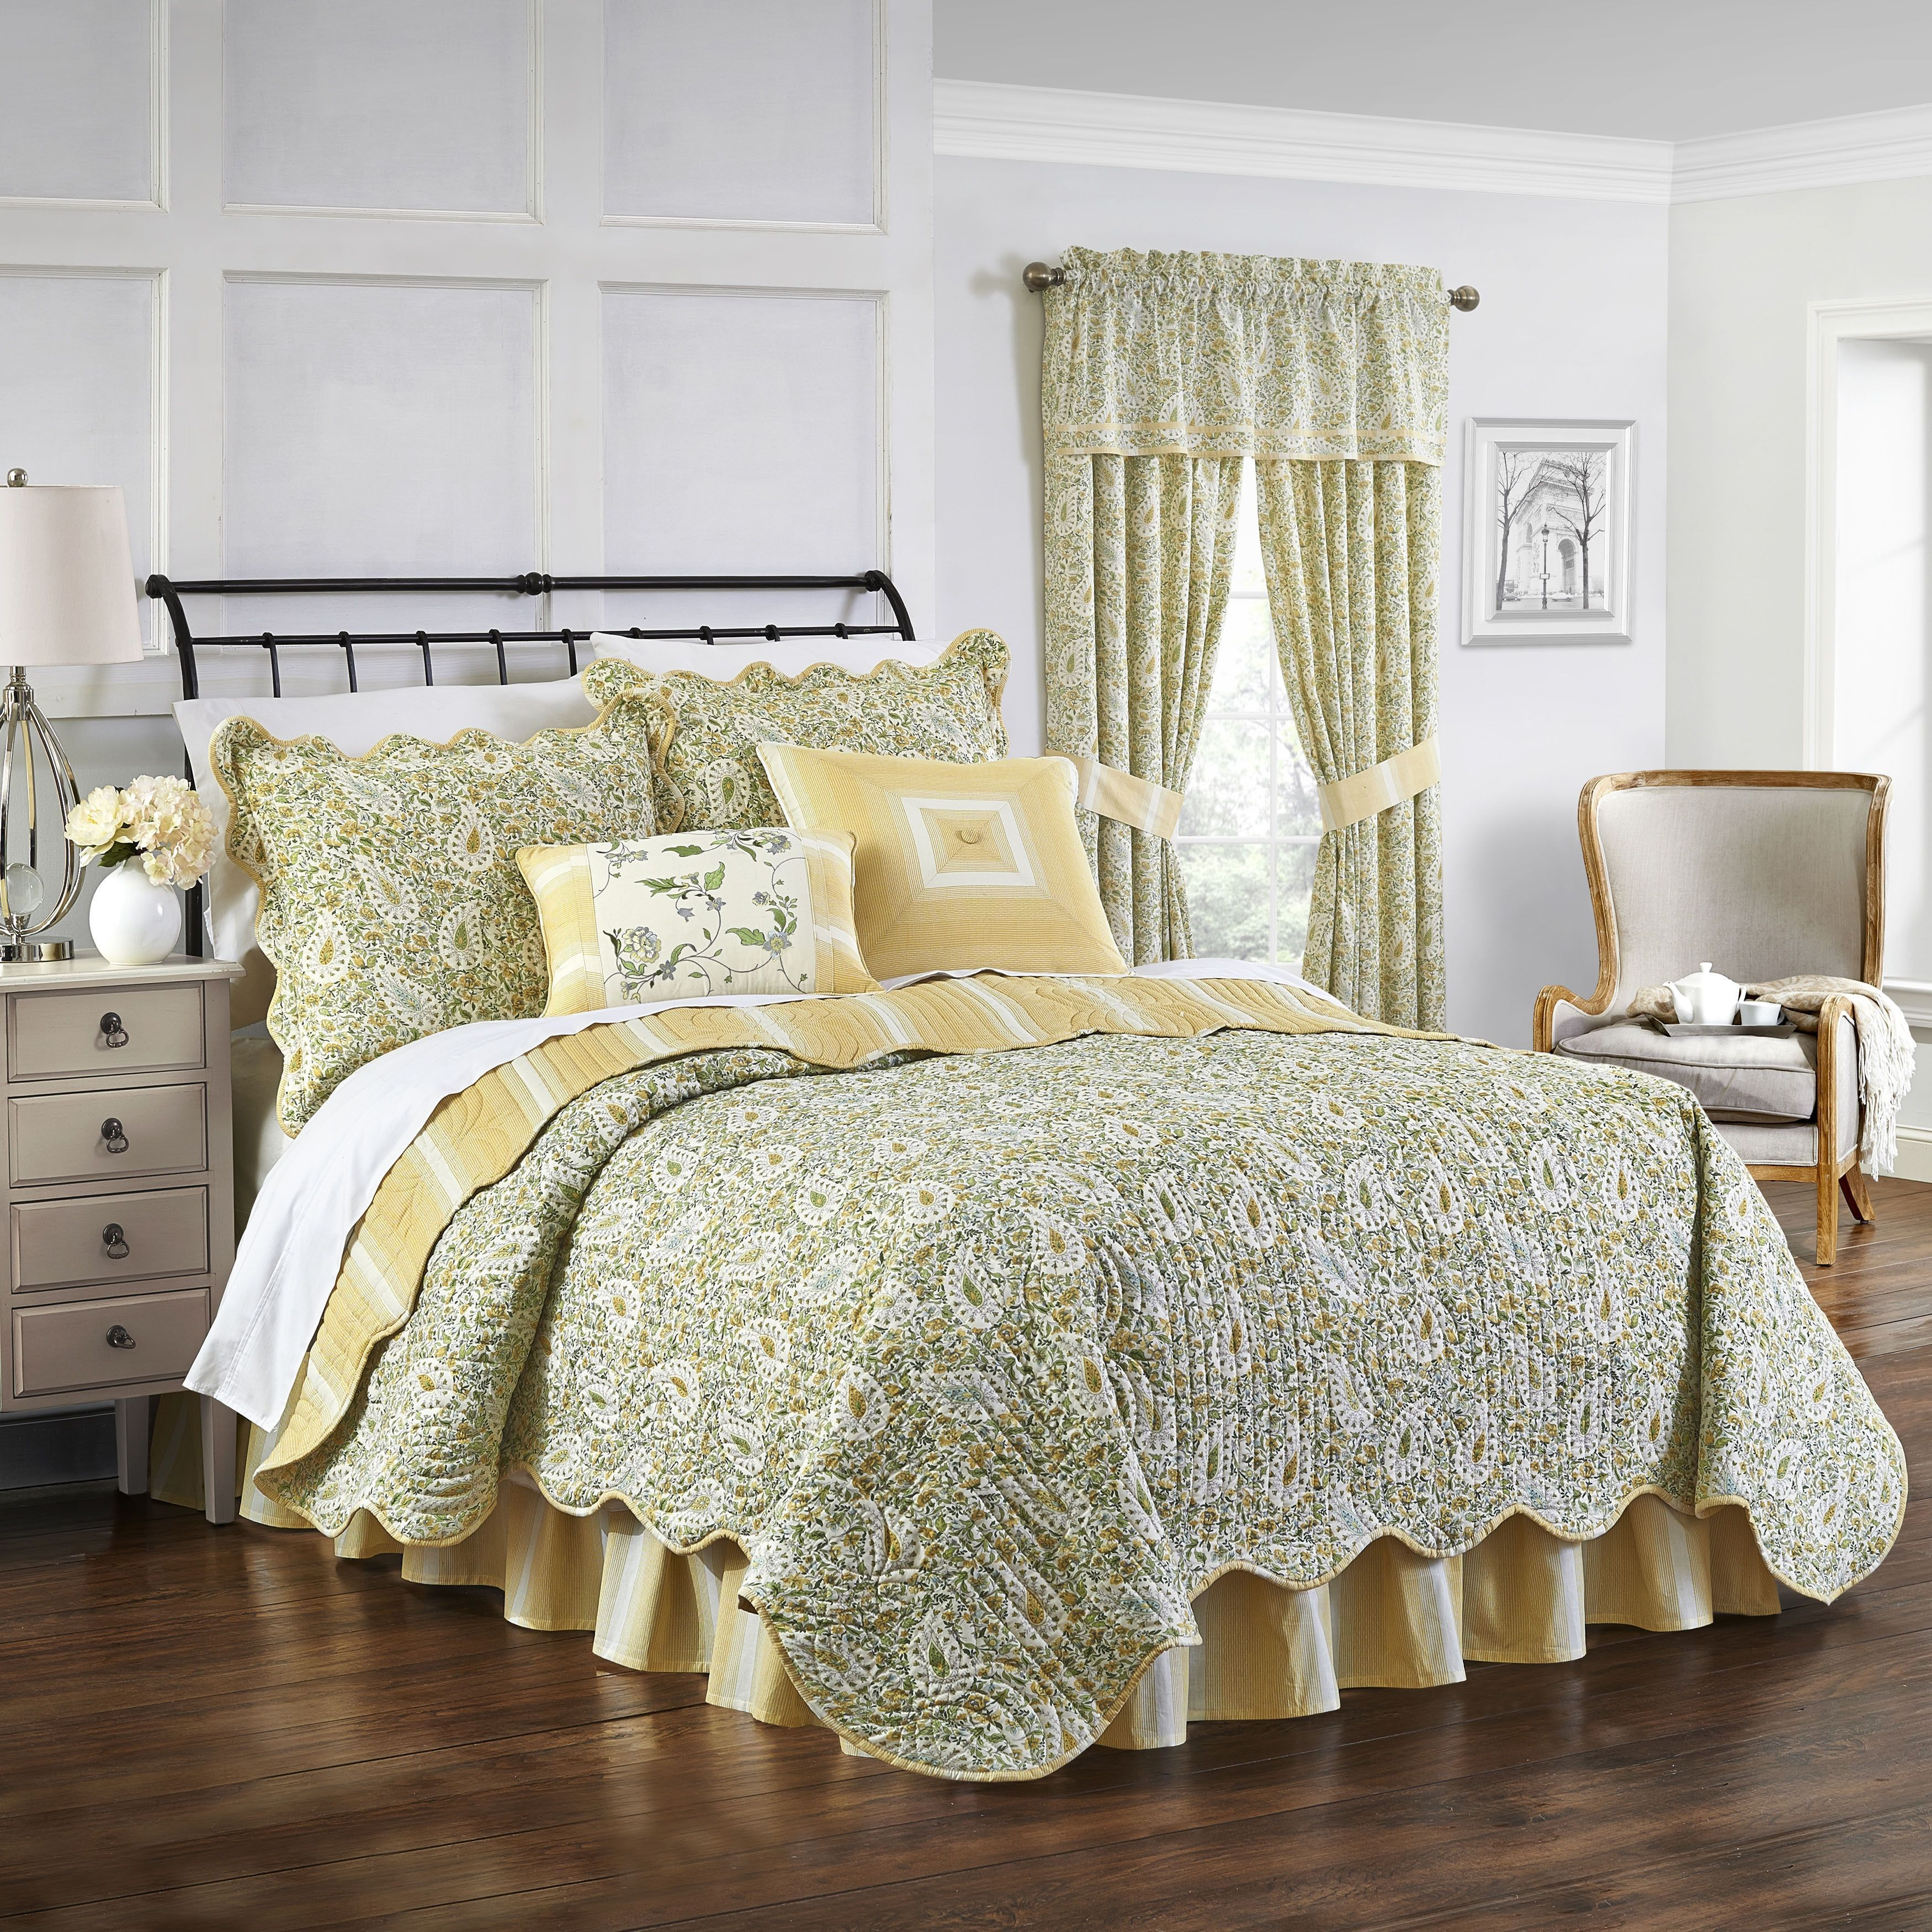 set shipping over sia overstock amy on grey bedding free bath bed com orders artisan comforter product